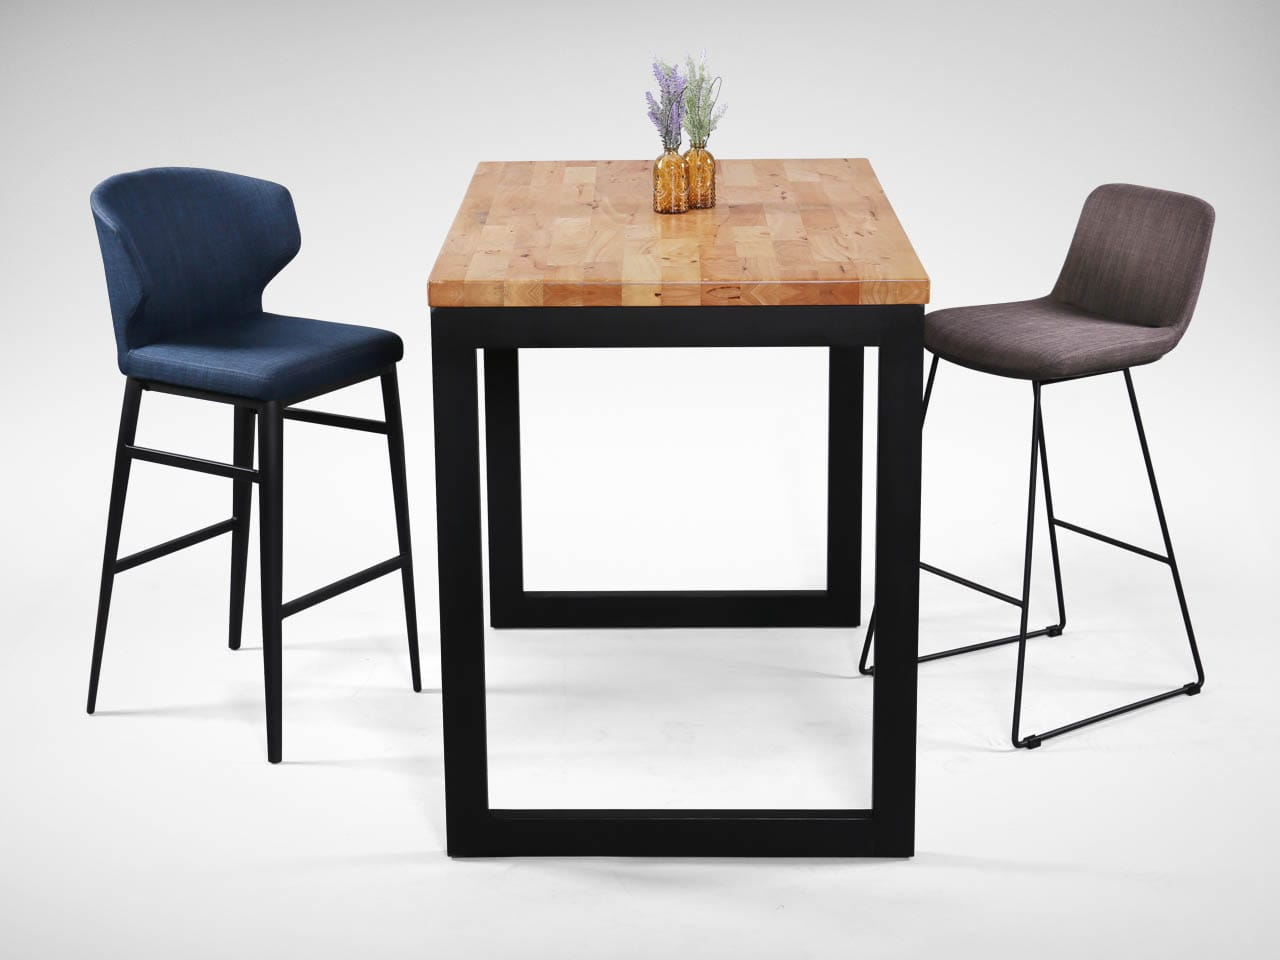 Match with [Fondue Barchair – SH750 & Uni Bar Table w/ Butcher Top – Customisable]